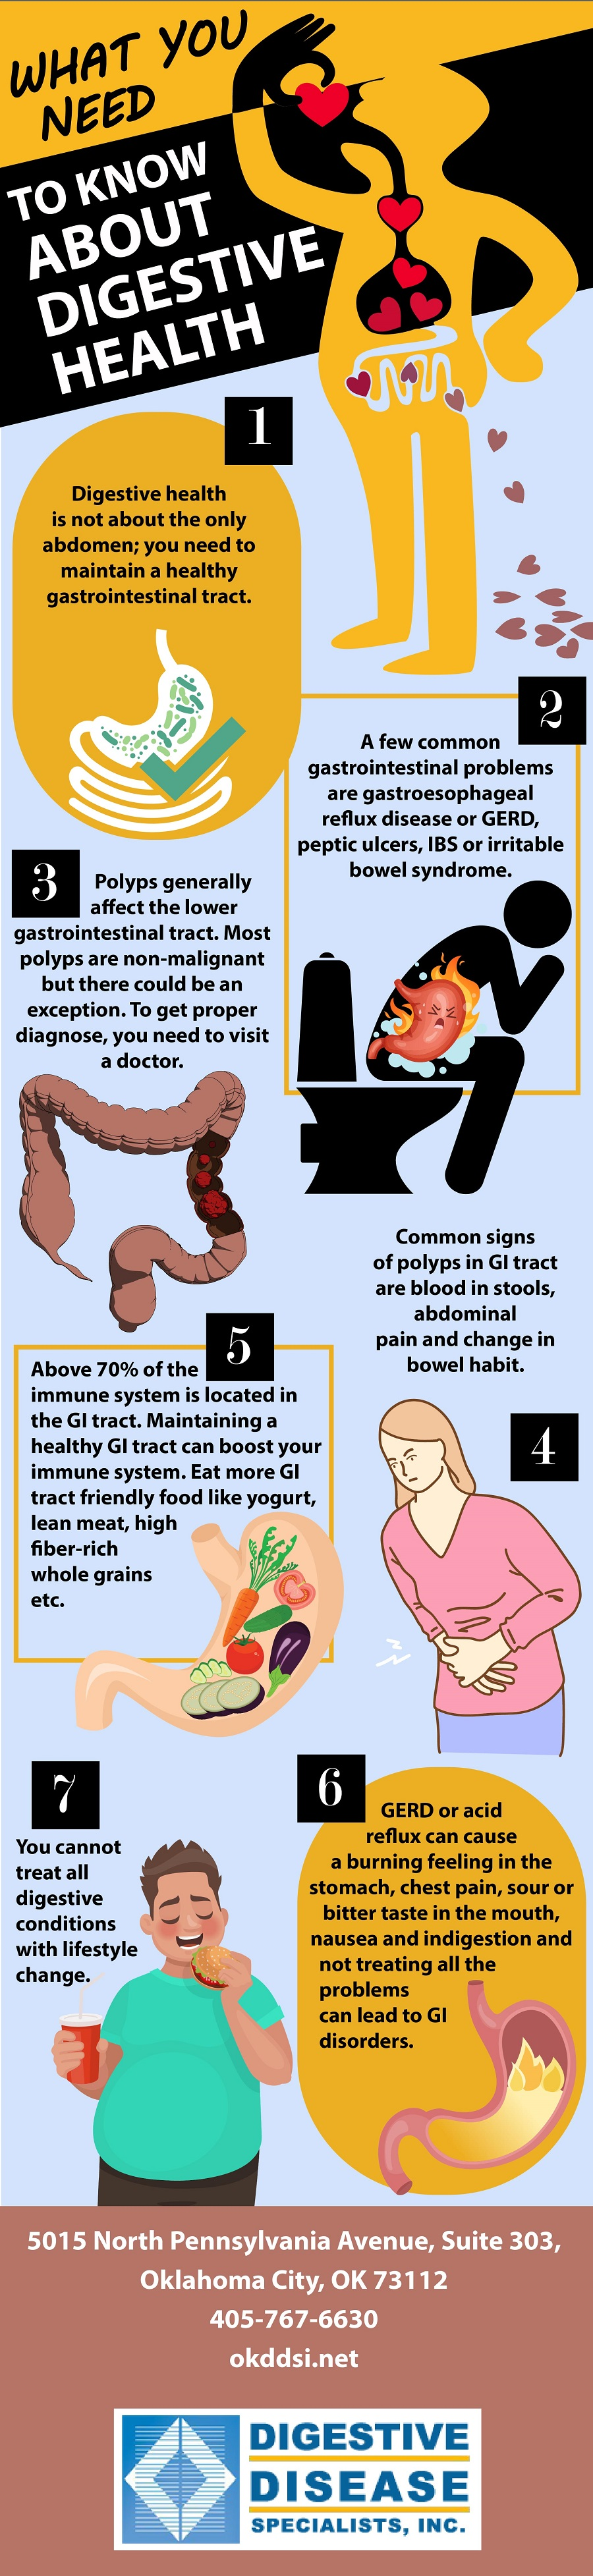 What You Need To Know About Digestive Health